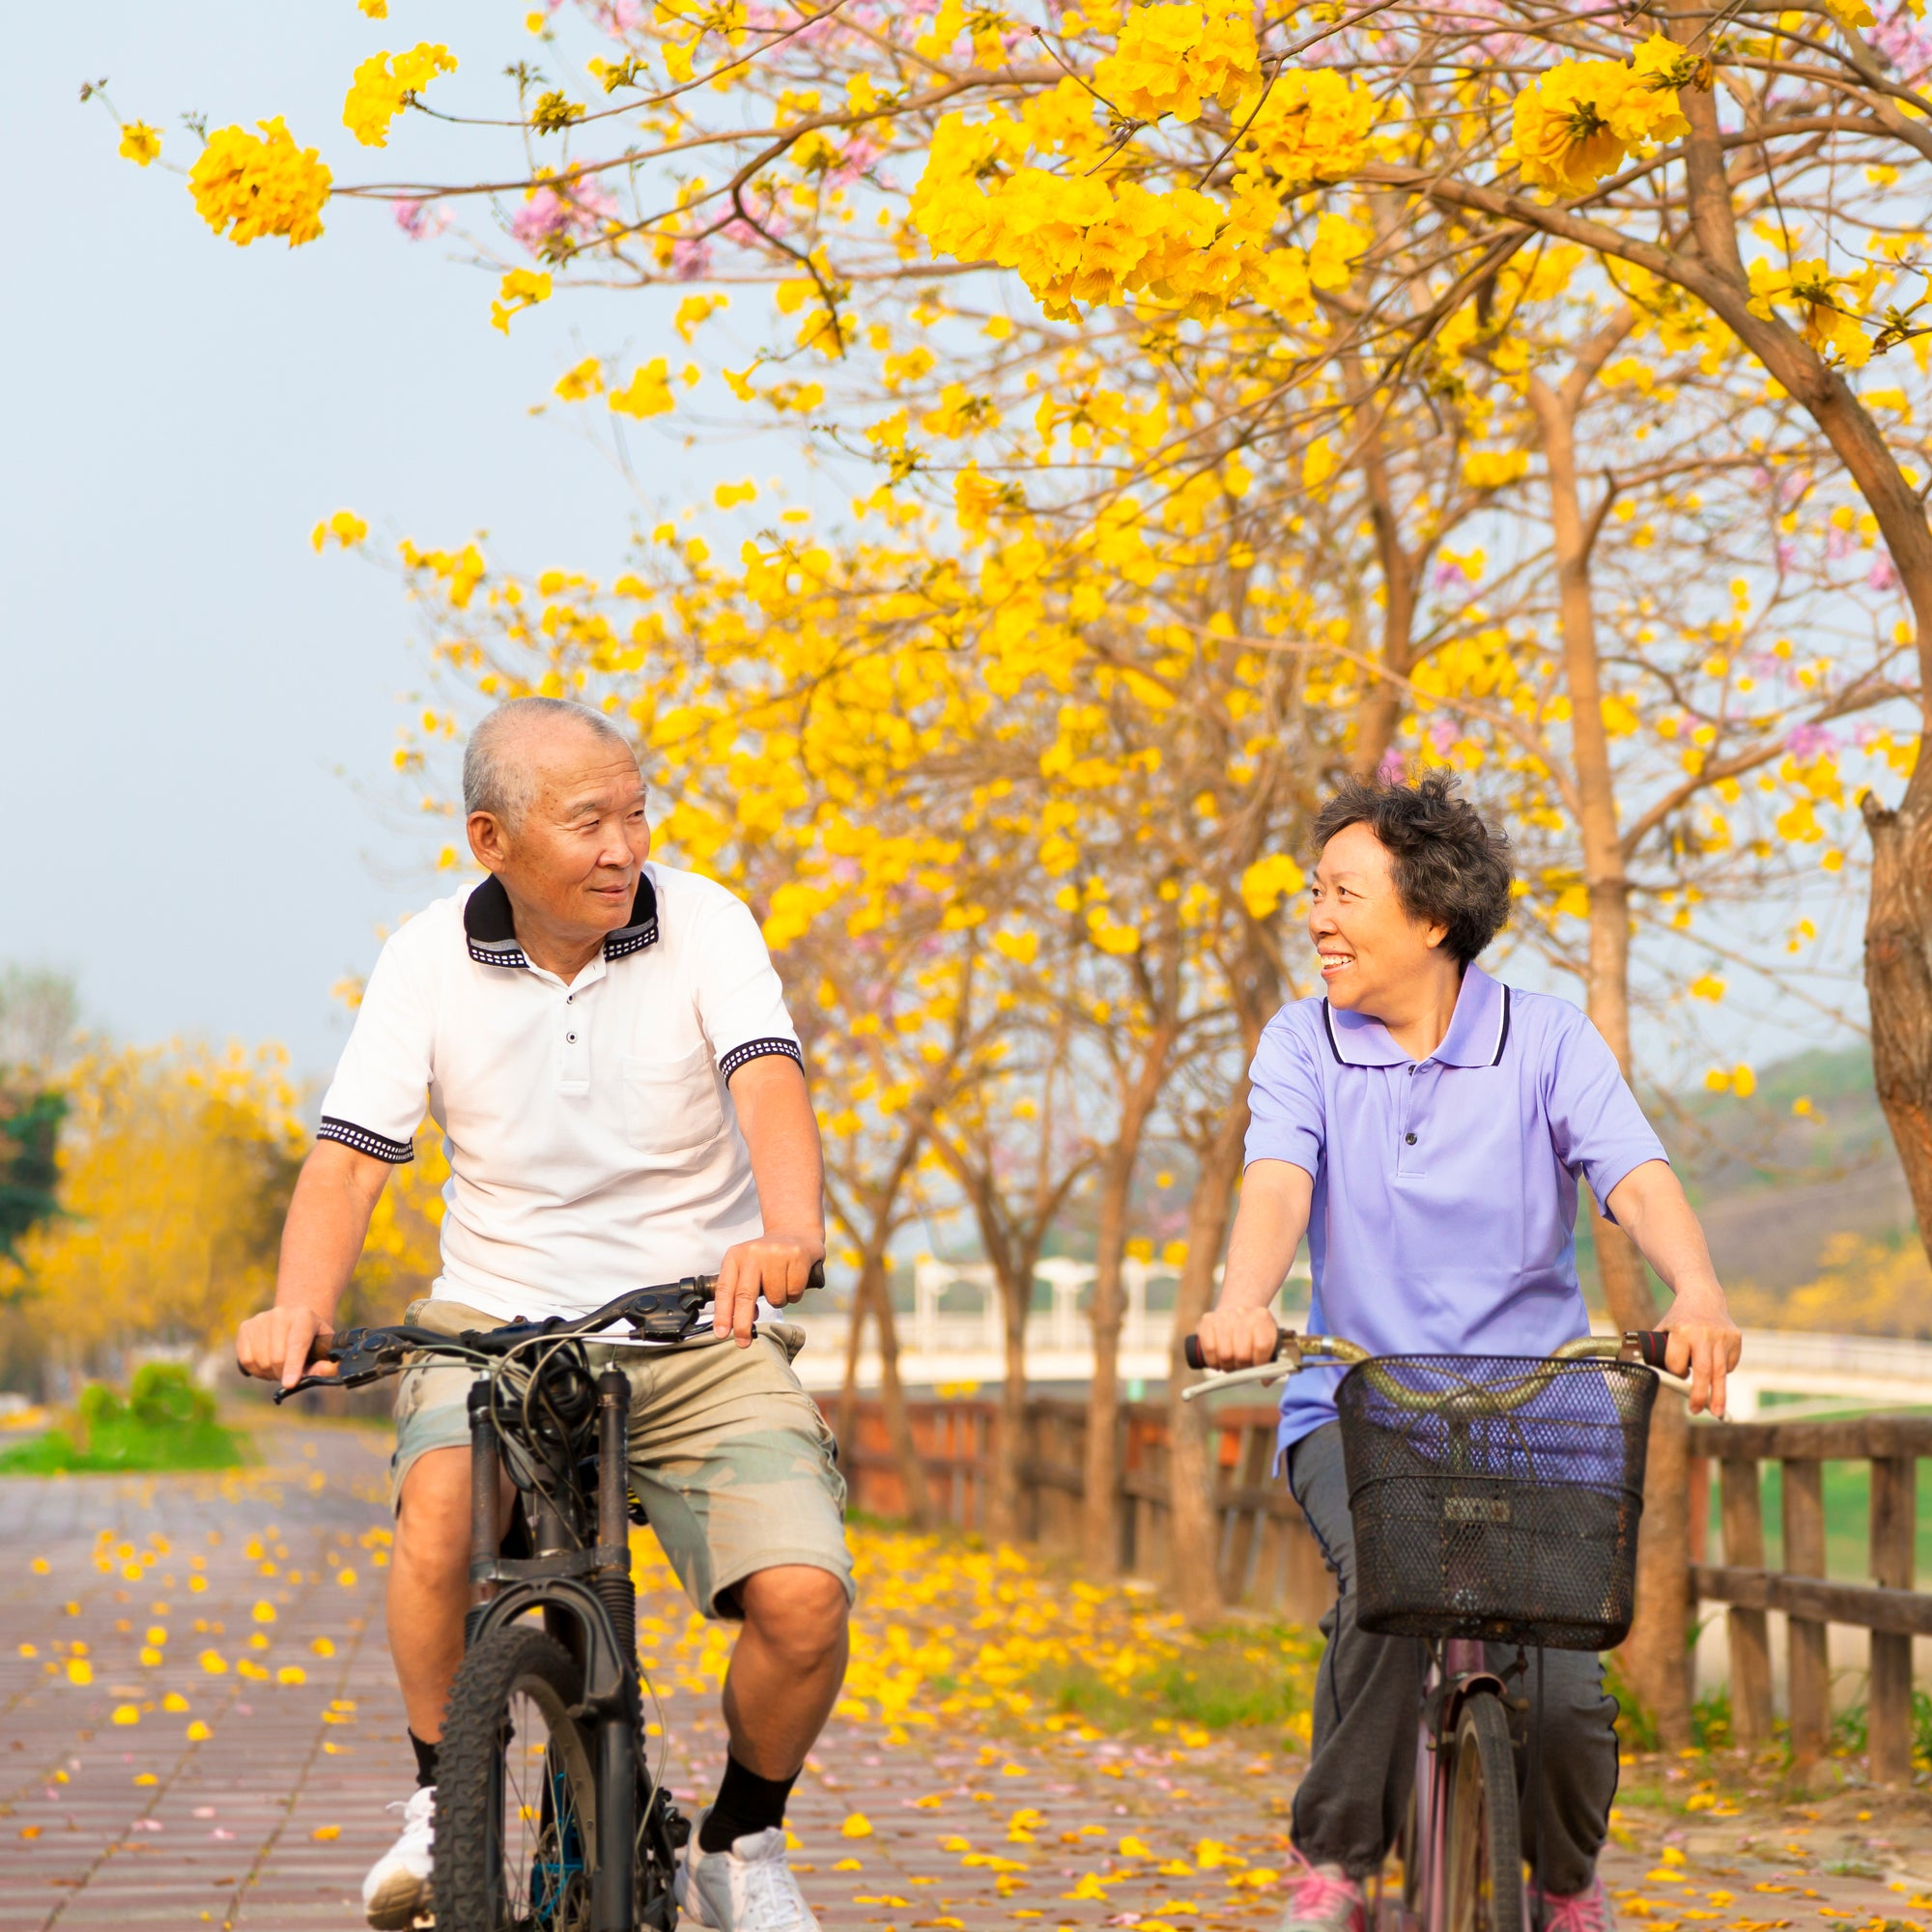 8 Tips For Senior Cycling